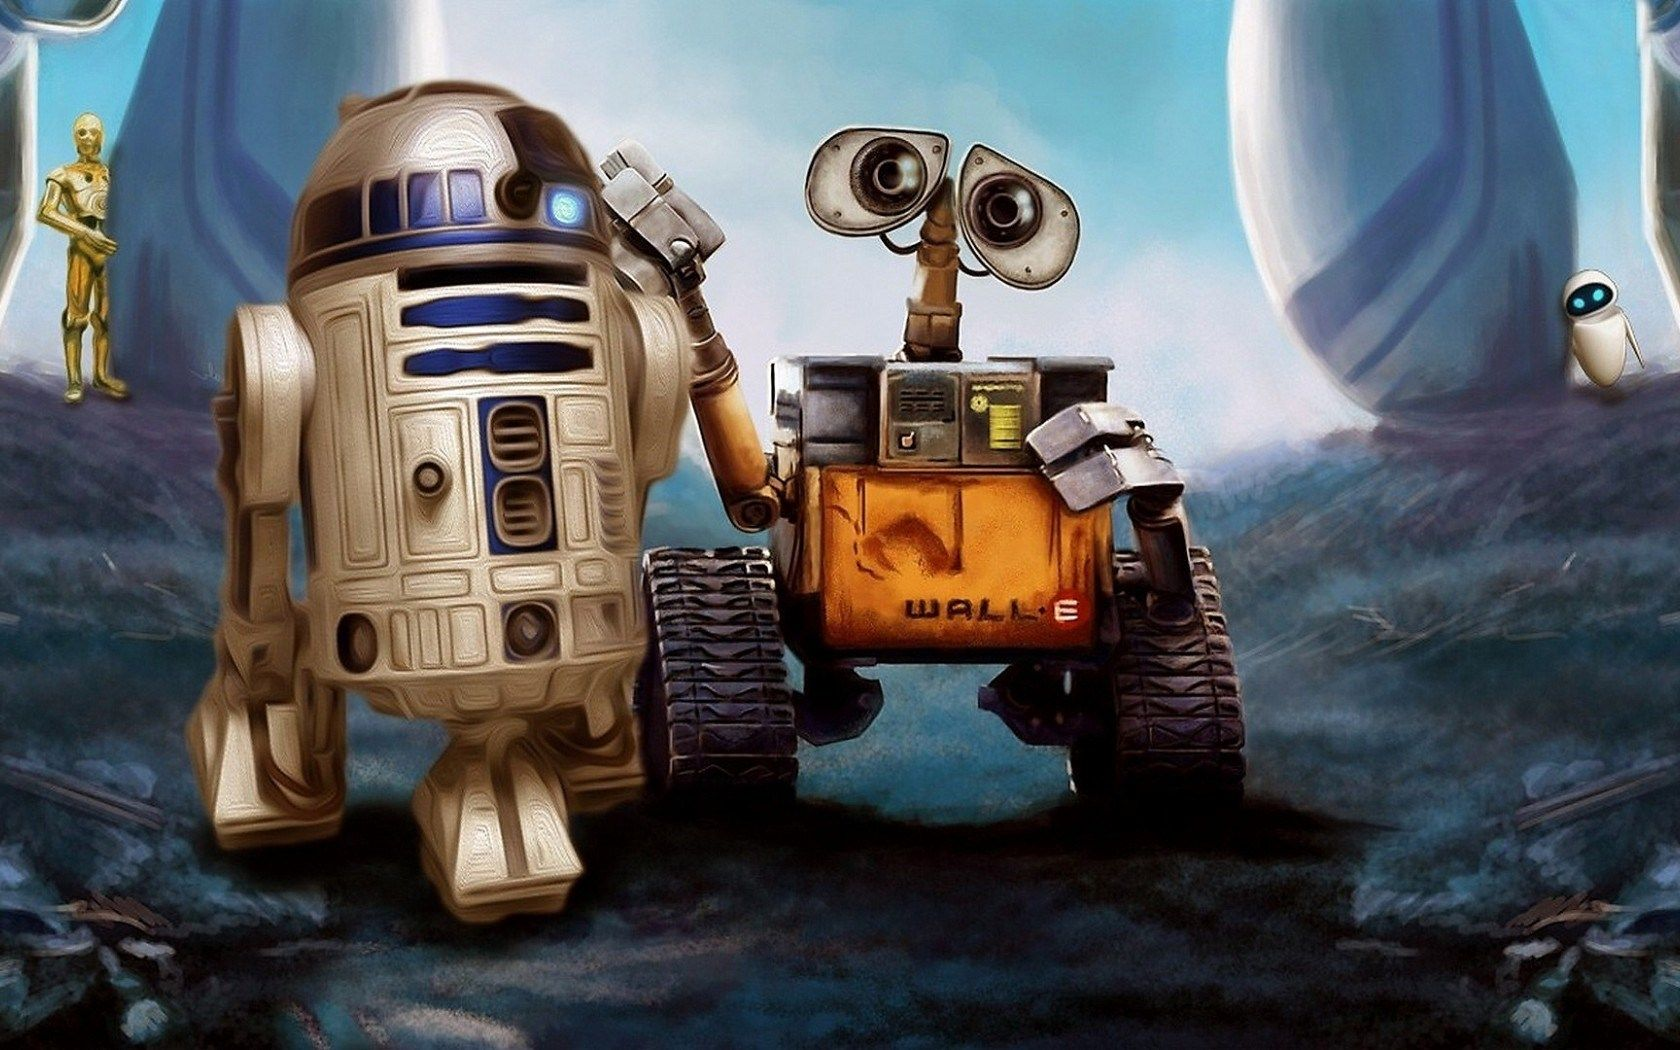 r2d2 wallpaper Google Search Wall e, Good animated